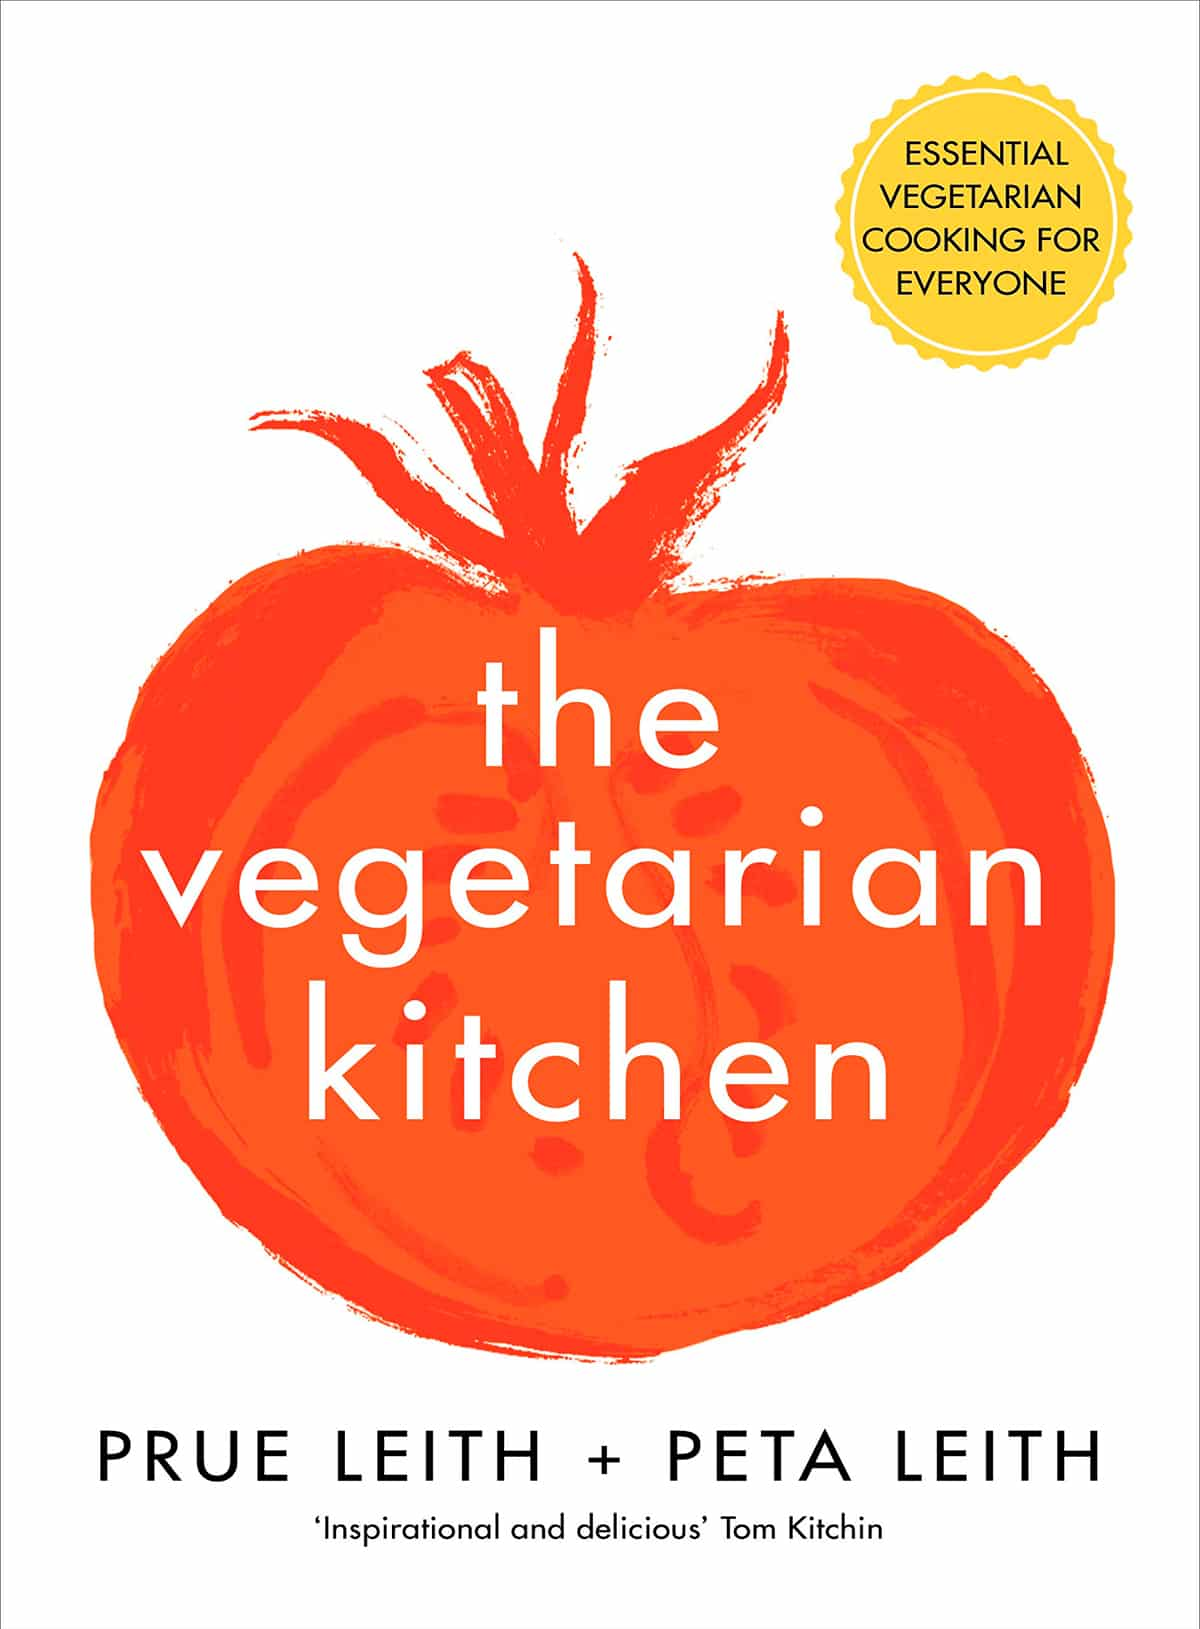 The Vegetarian Kitchen book cover, which depicts the title over an illustration of a tomato.